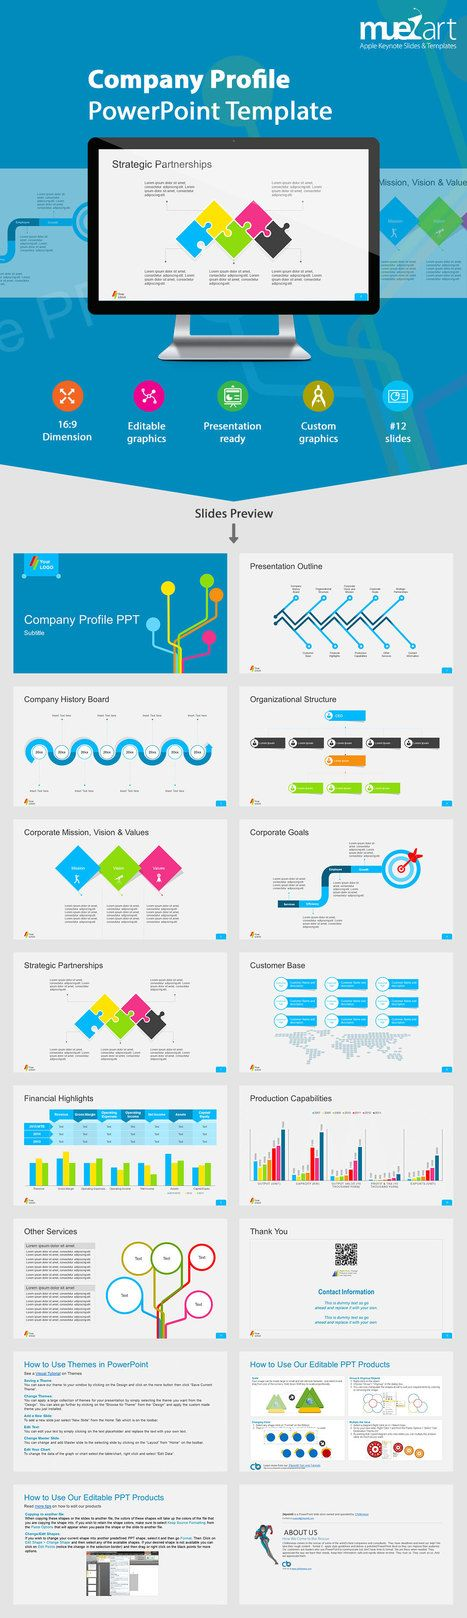 Company Profile PowerPoint Template by JafarDesigns GraphicRiver - corporate profile template